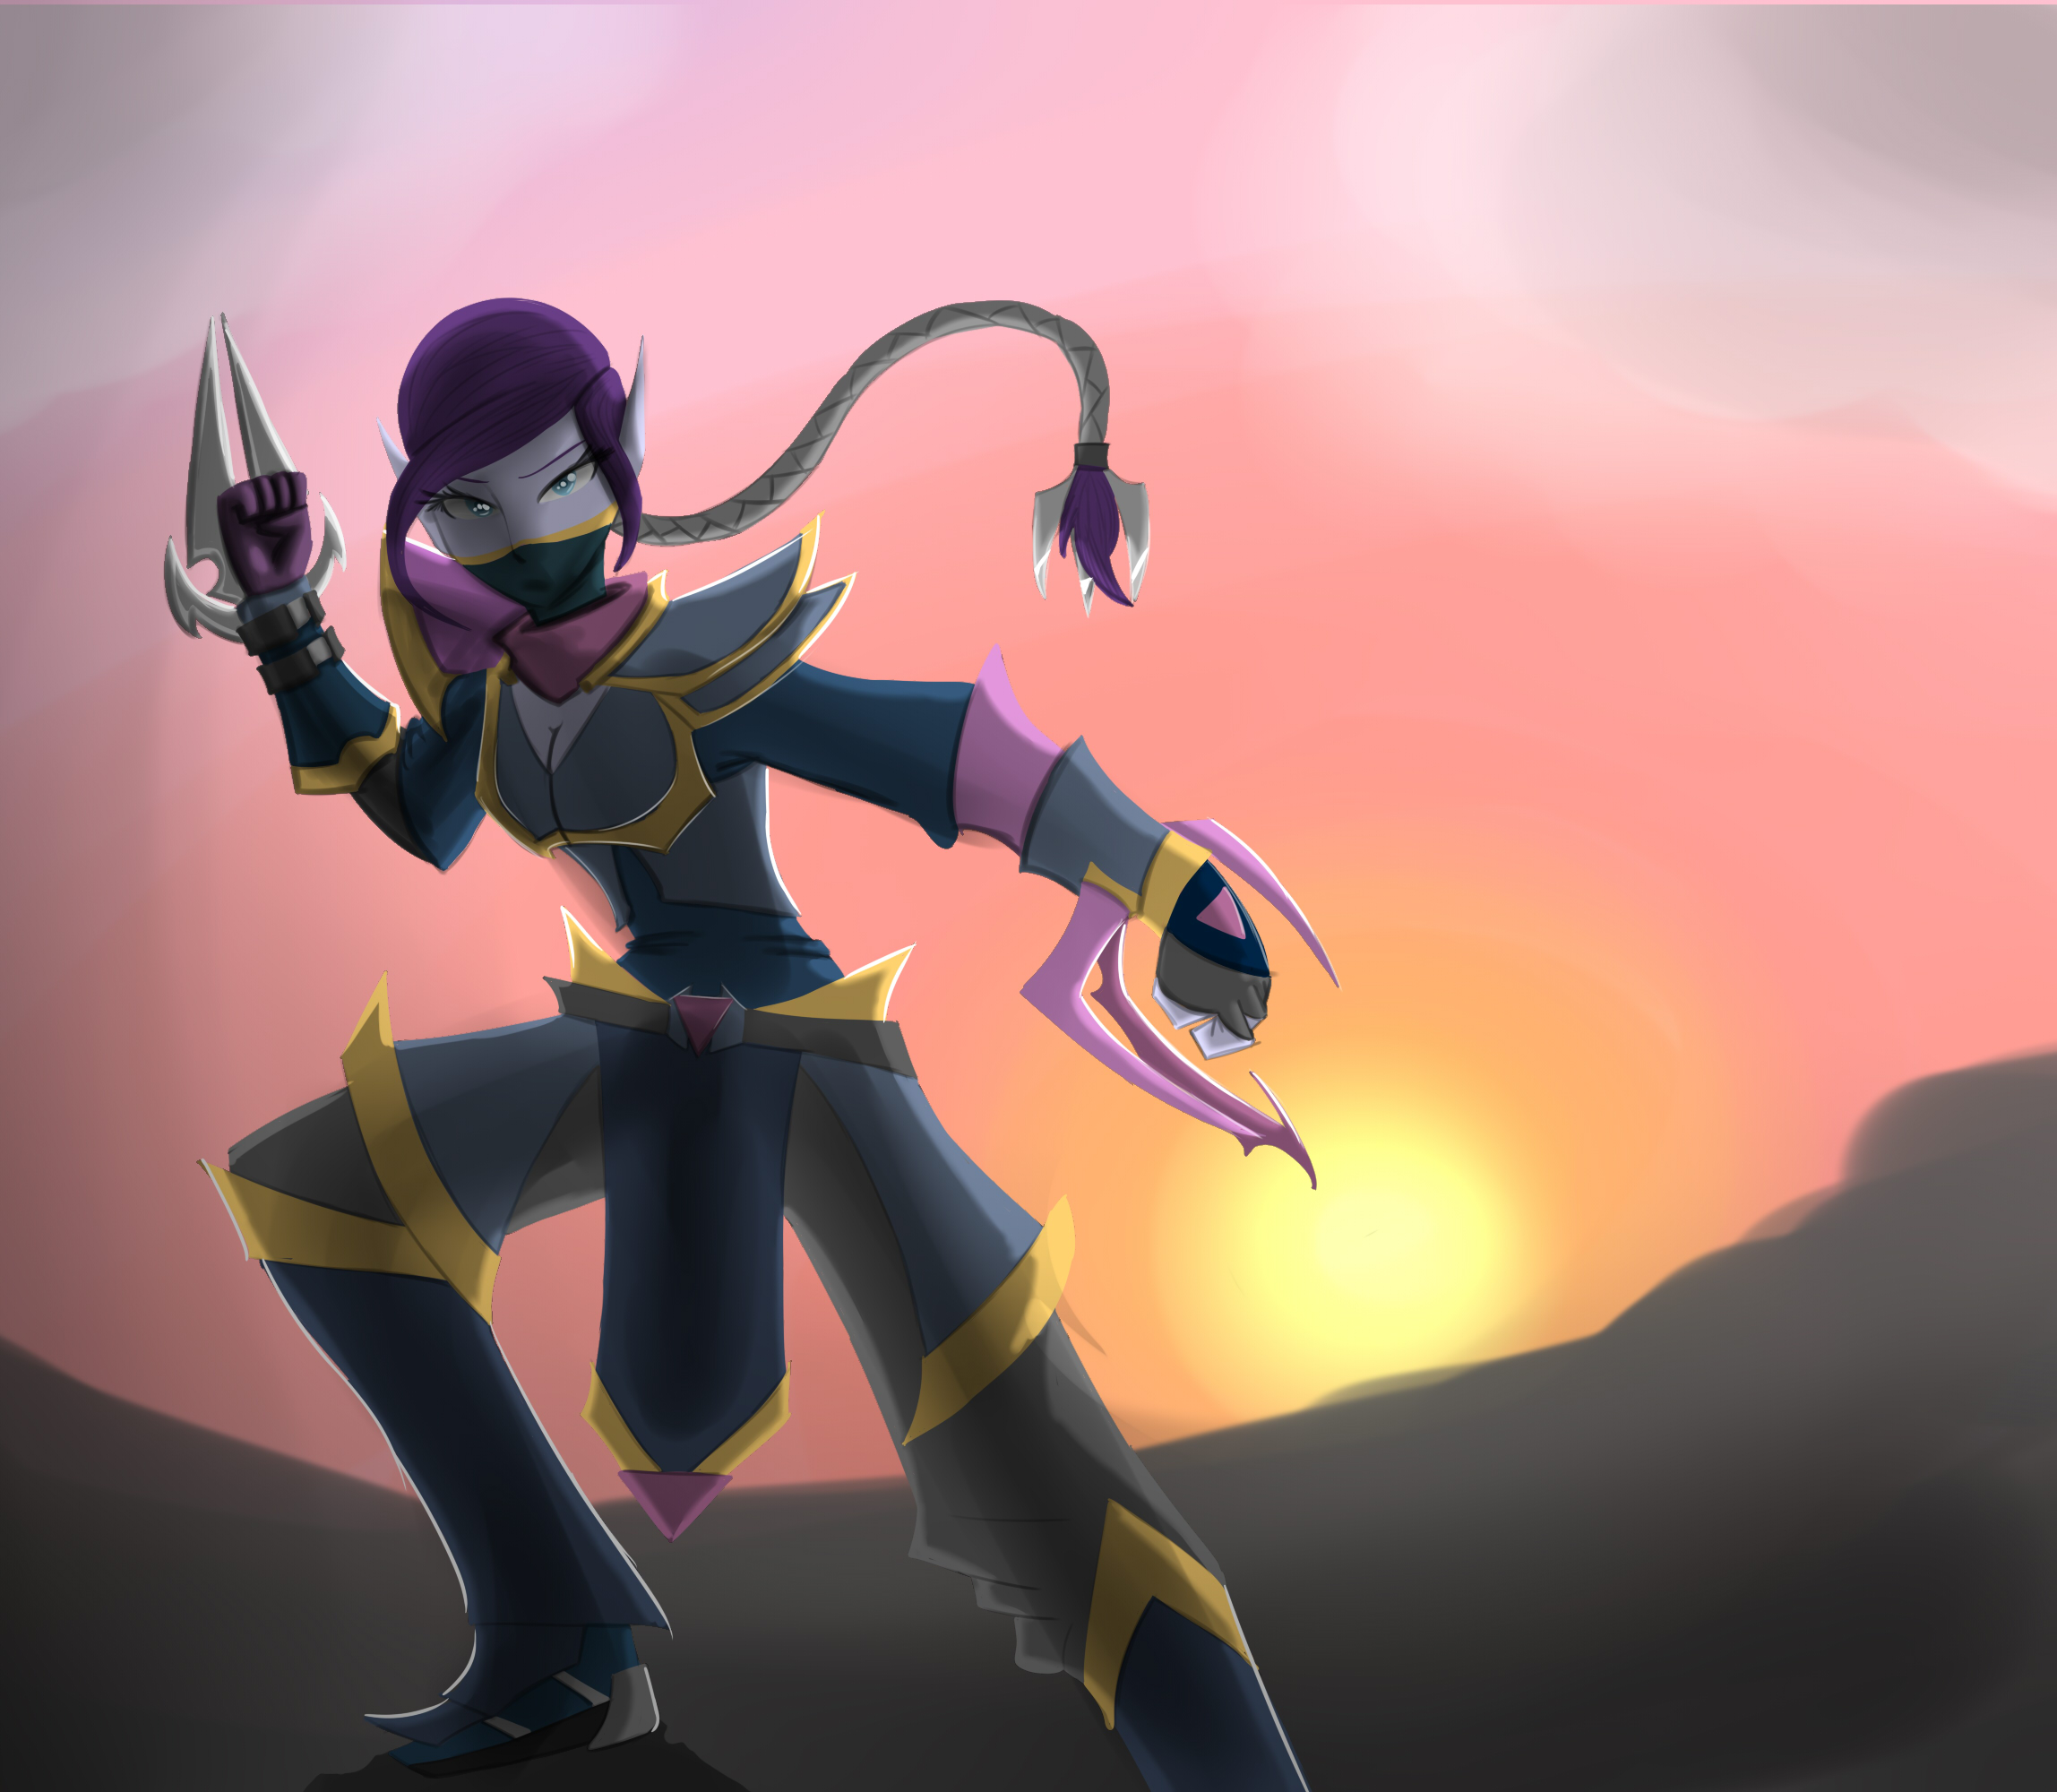 Another Templar Assassin